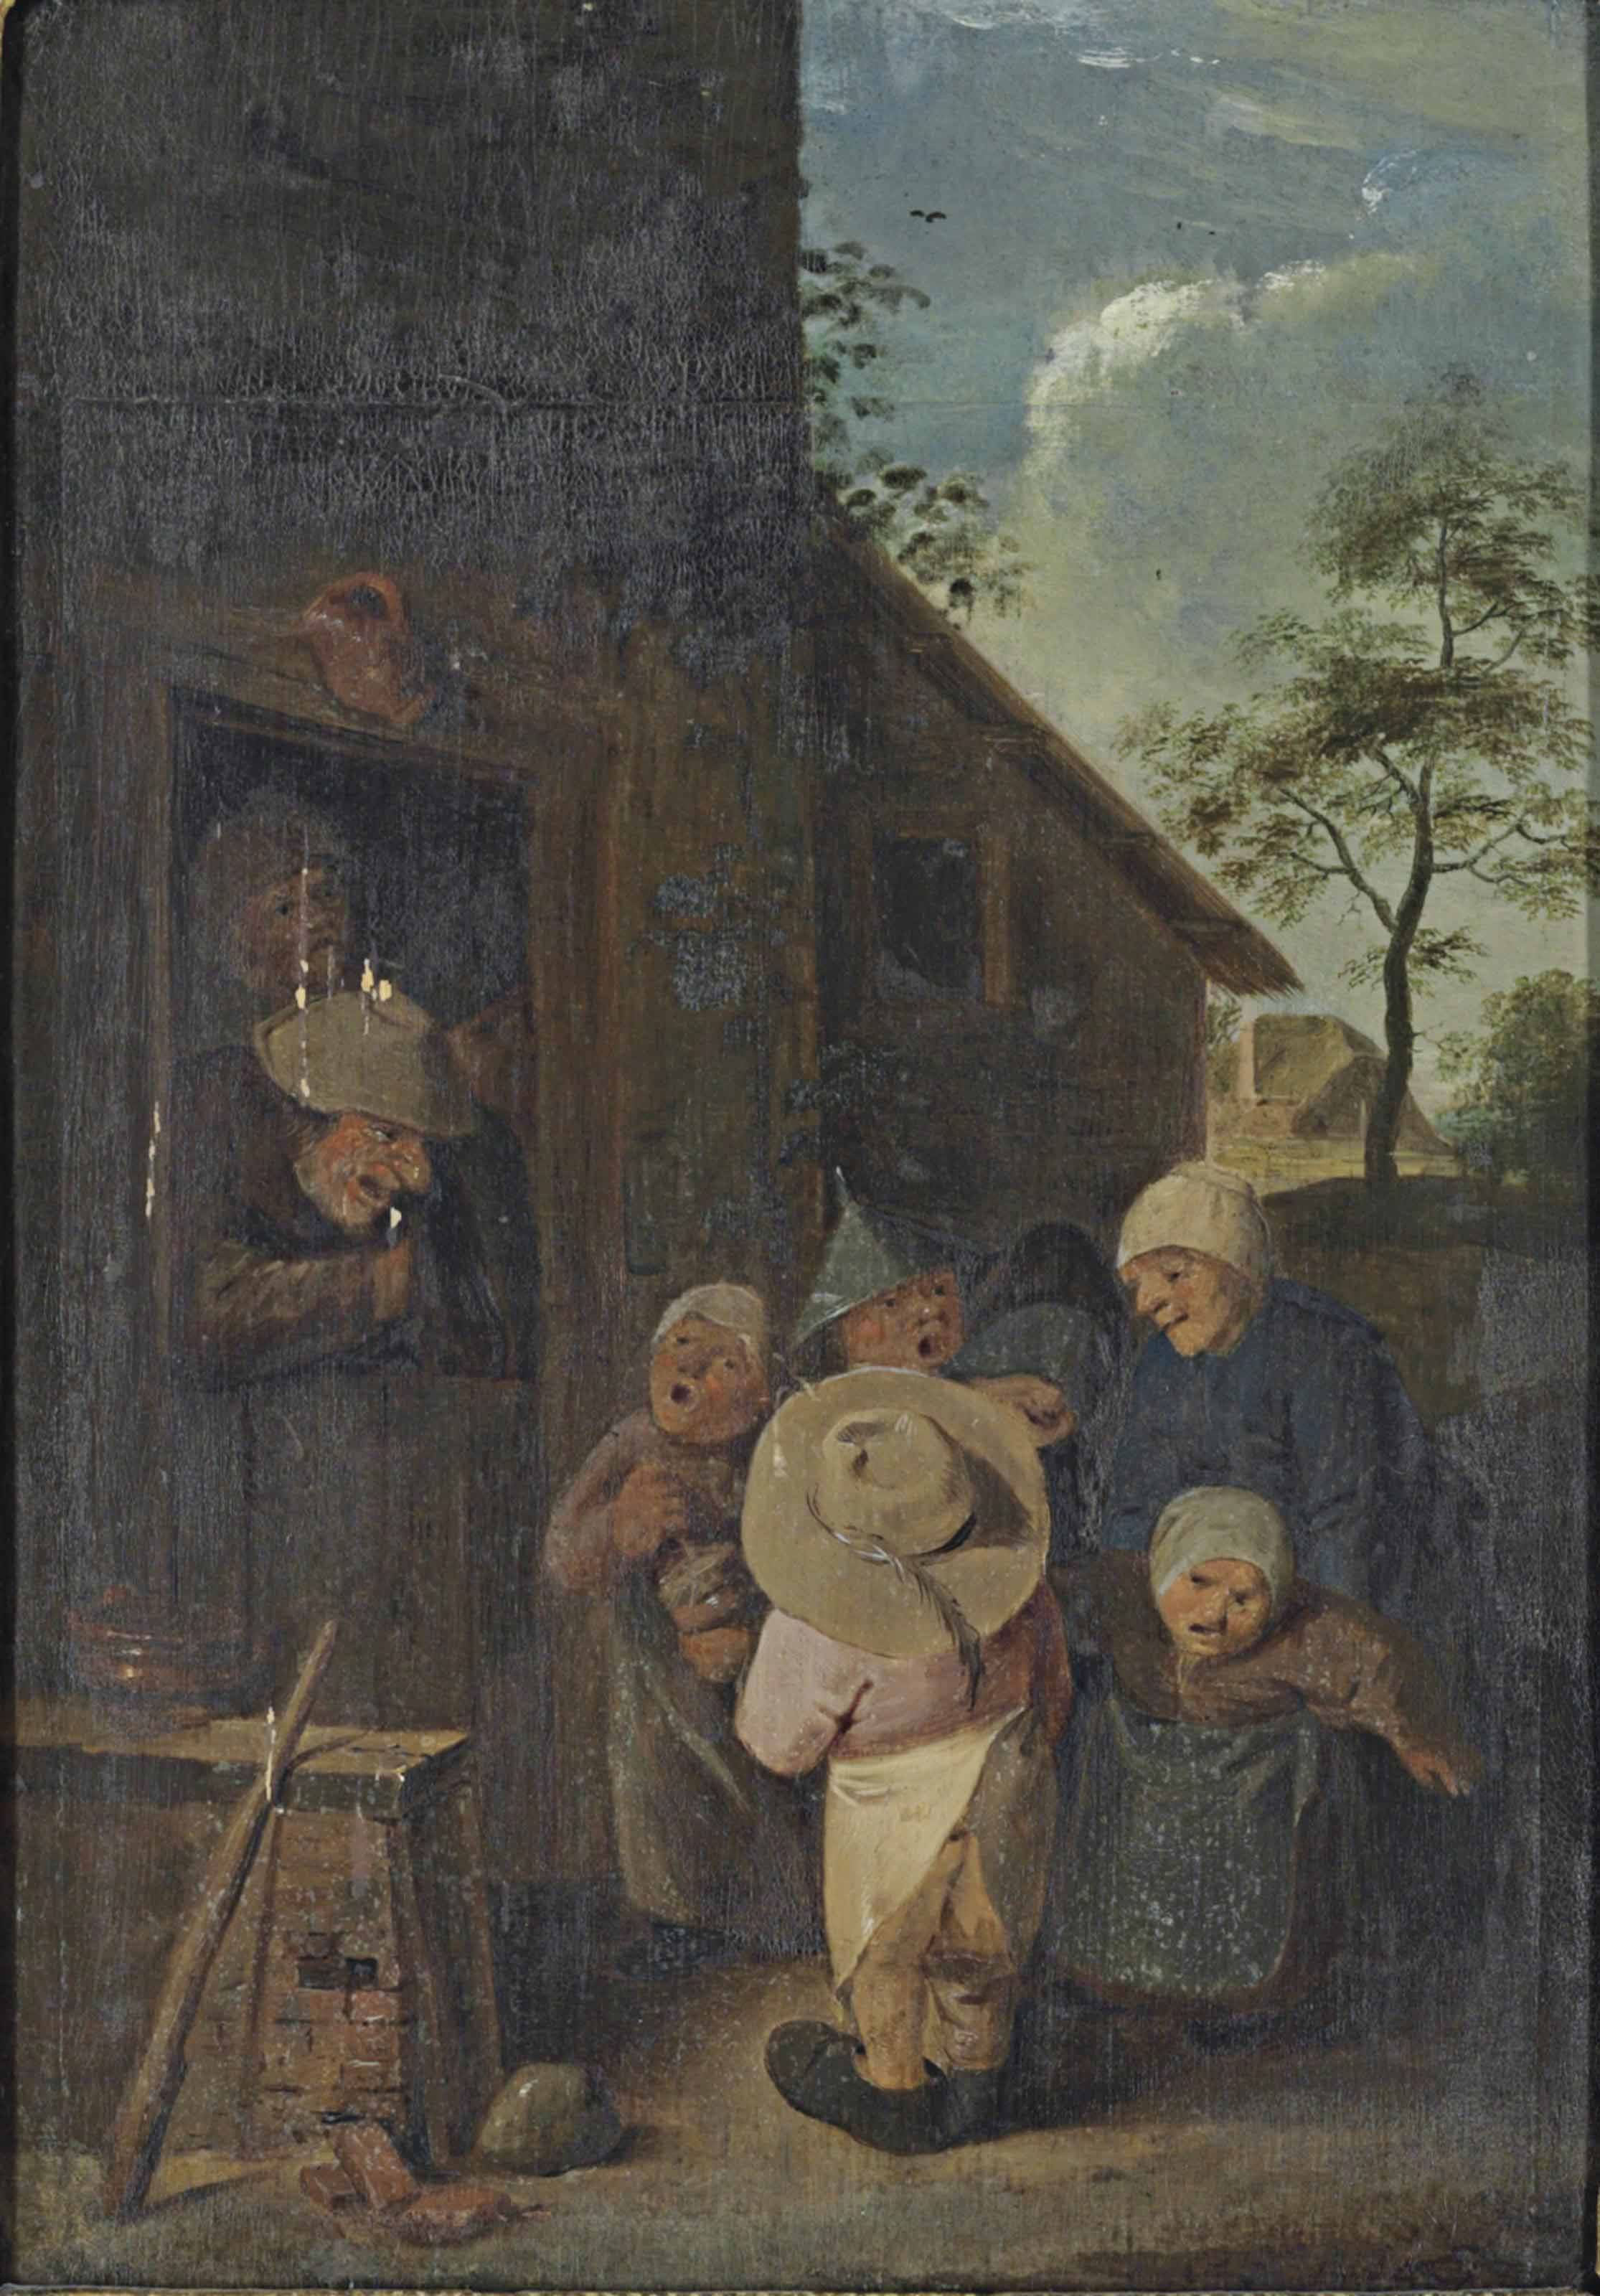 Peasants making music outside an inn